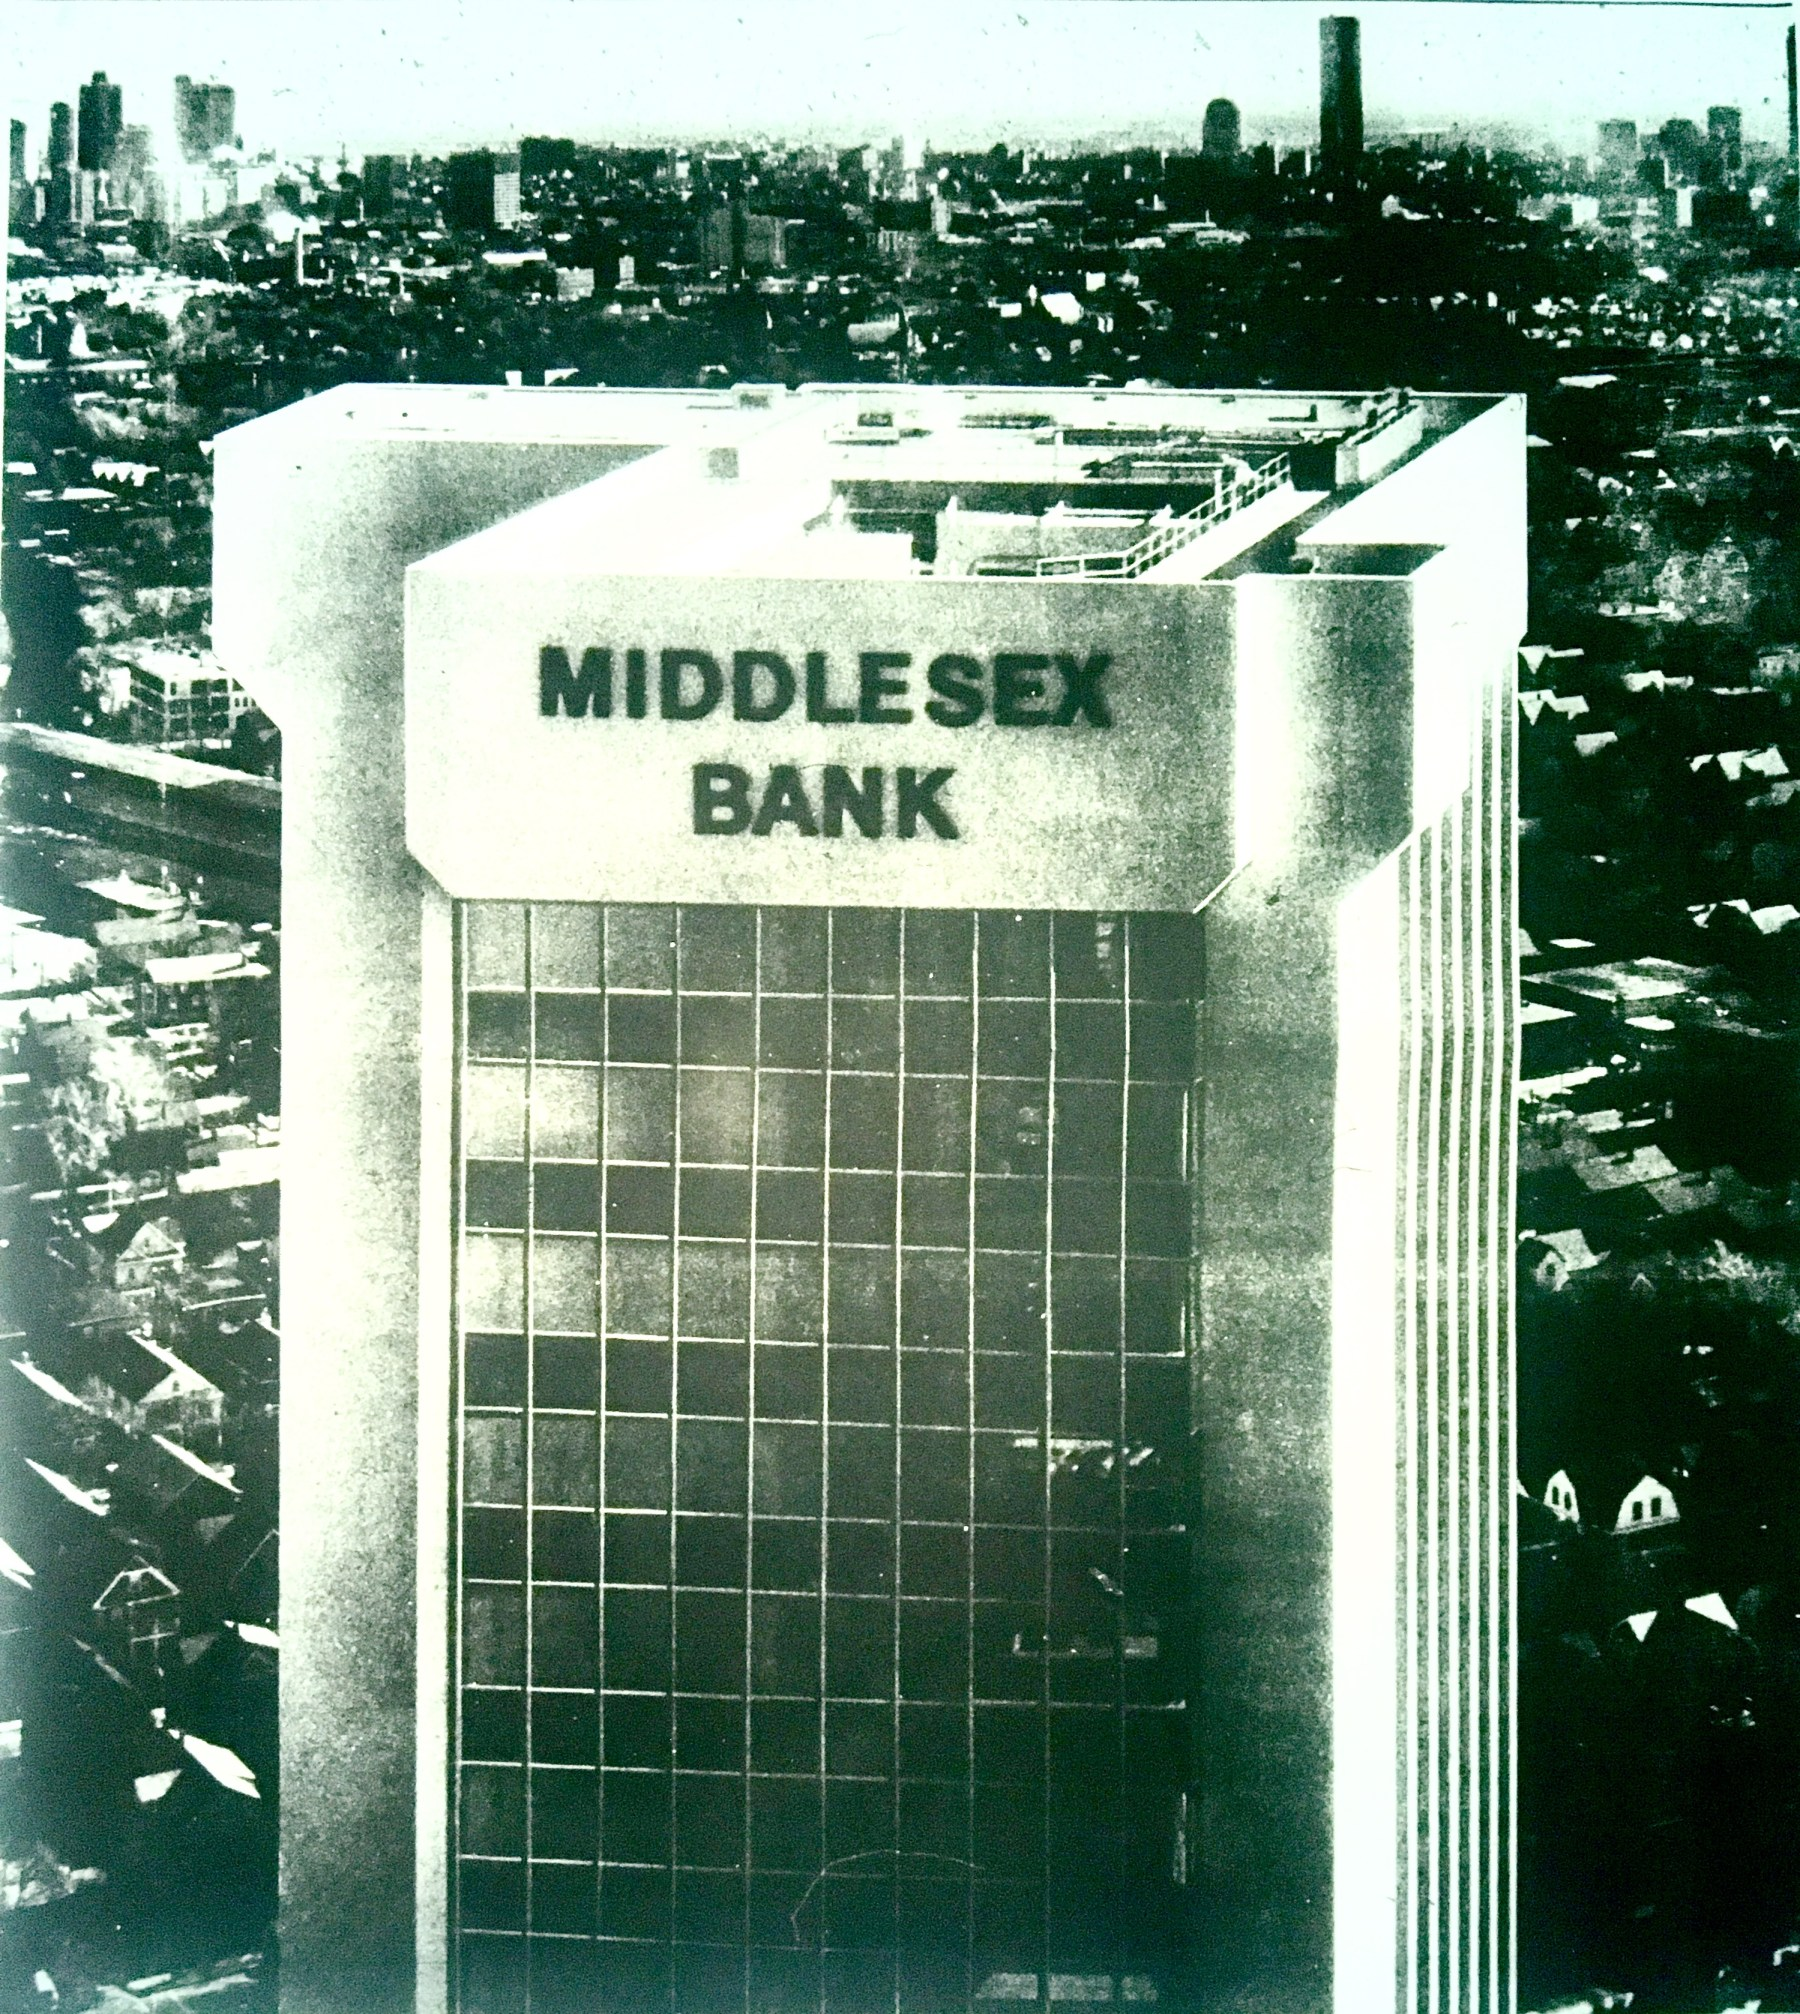 Middlesex Bank with Boston behind